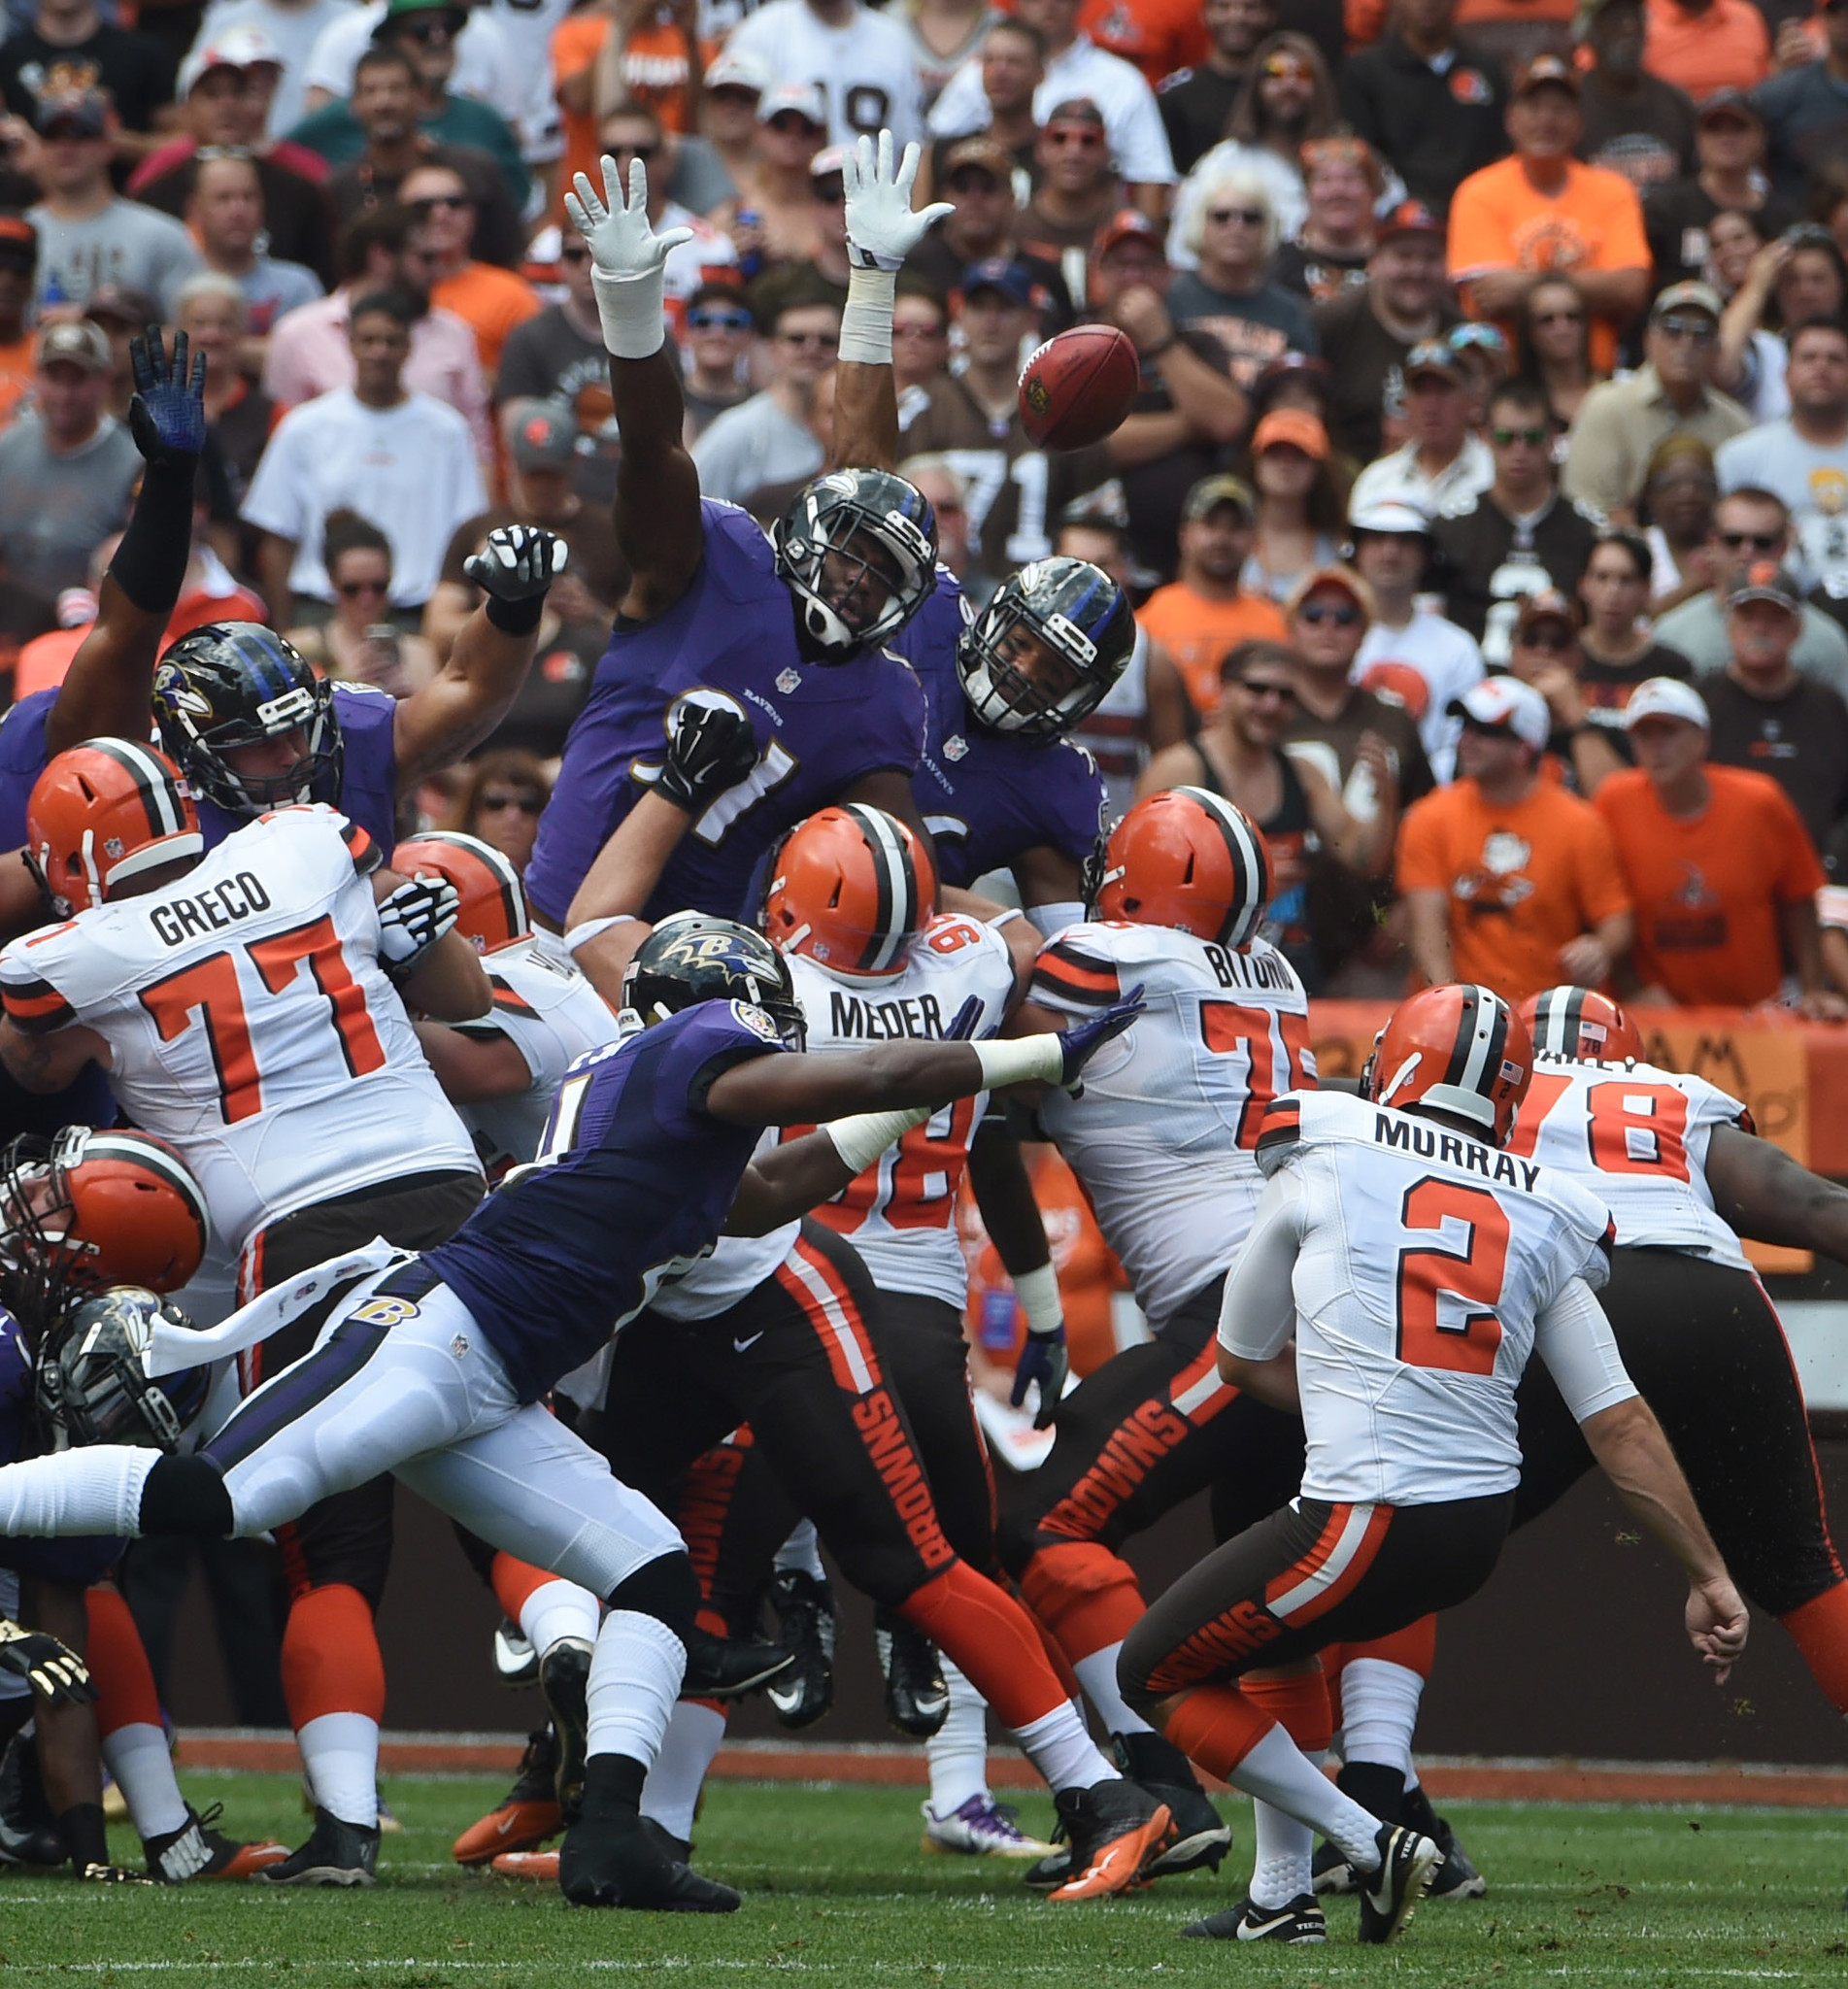 Bal-special-teams-played-significant-role-in-ravens-25-20-win-against-the-cleveland-browns-20160919